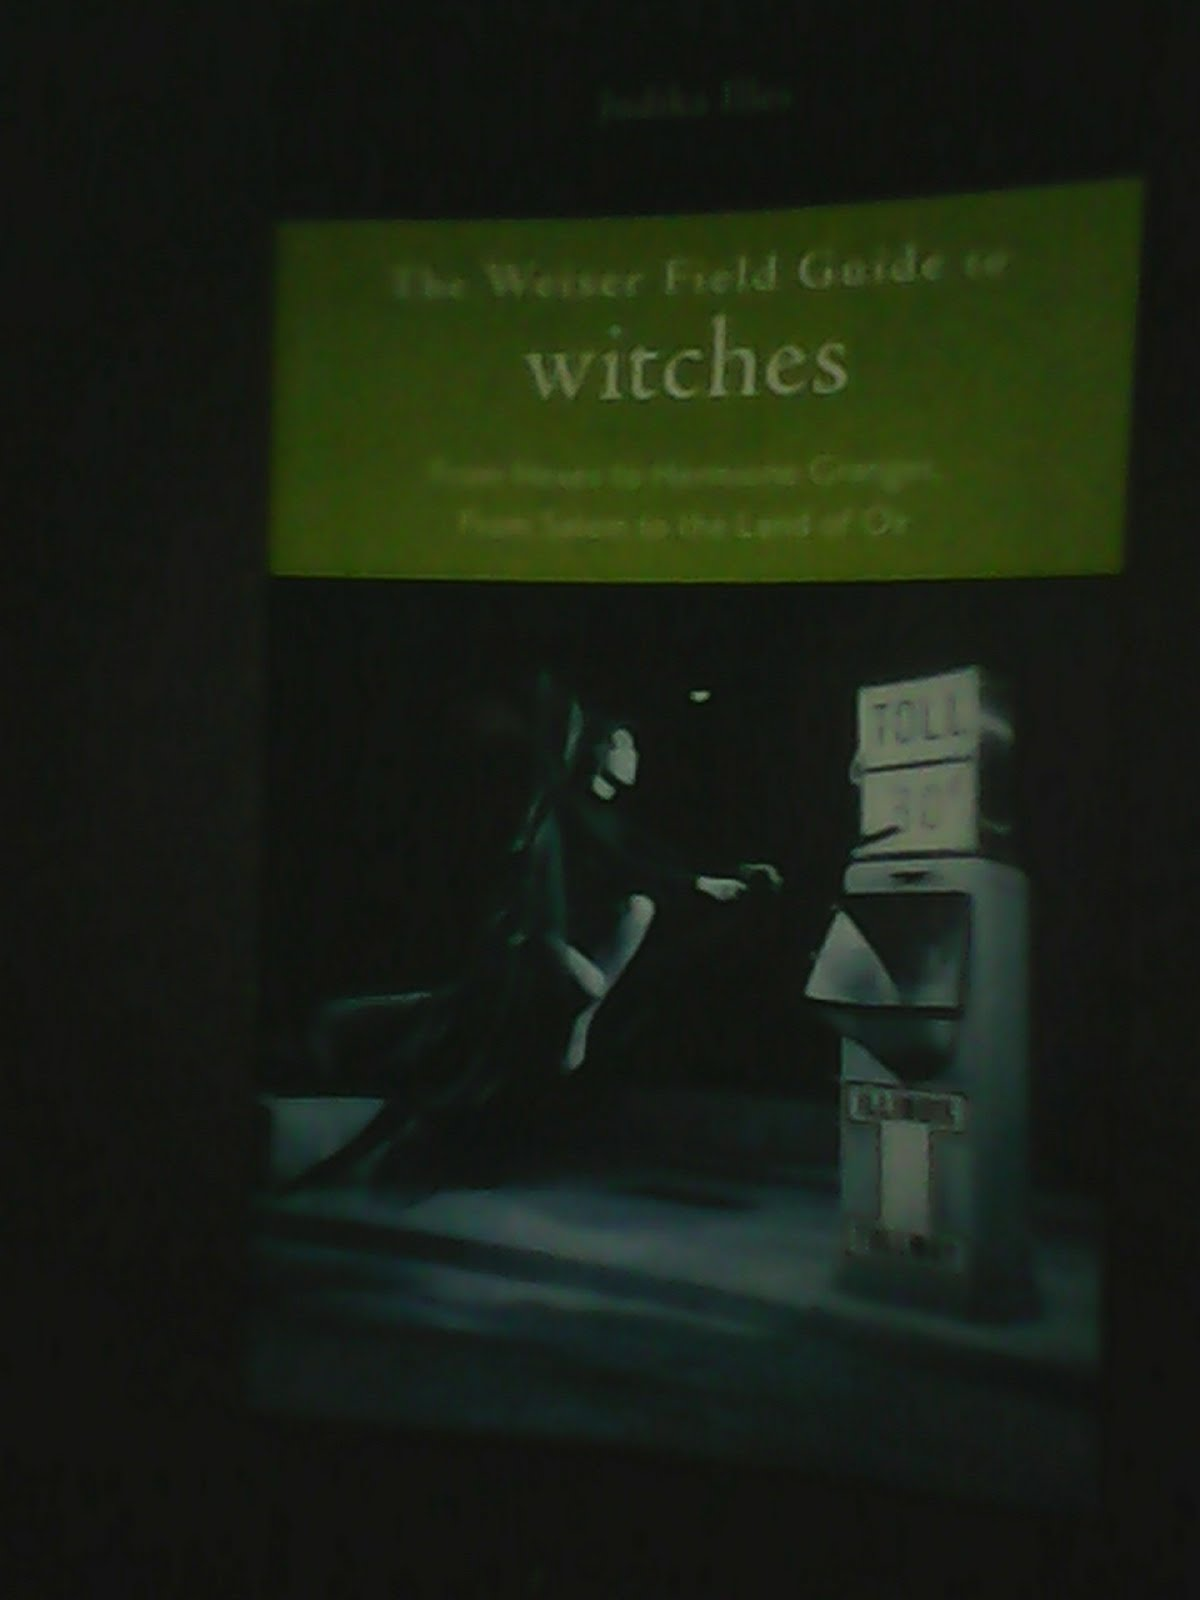 'The Weiser Field Guide to witches' by Judika Illes.